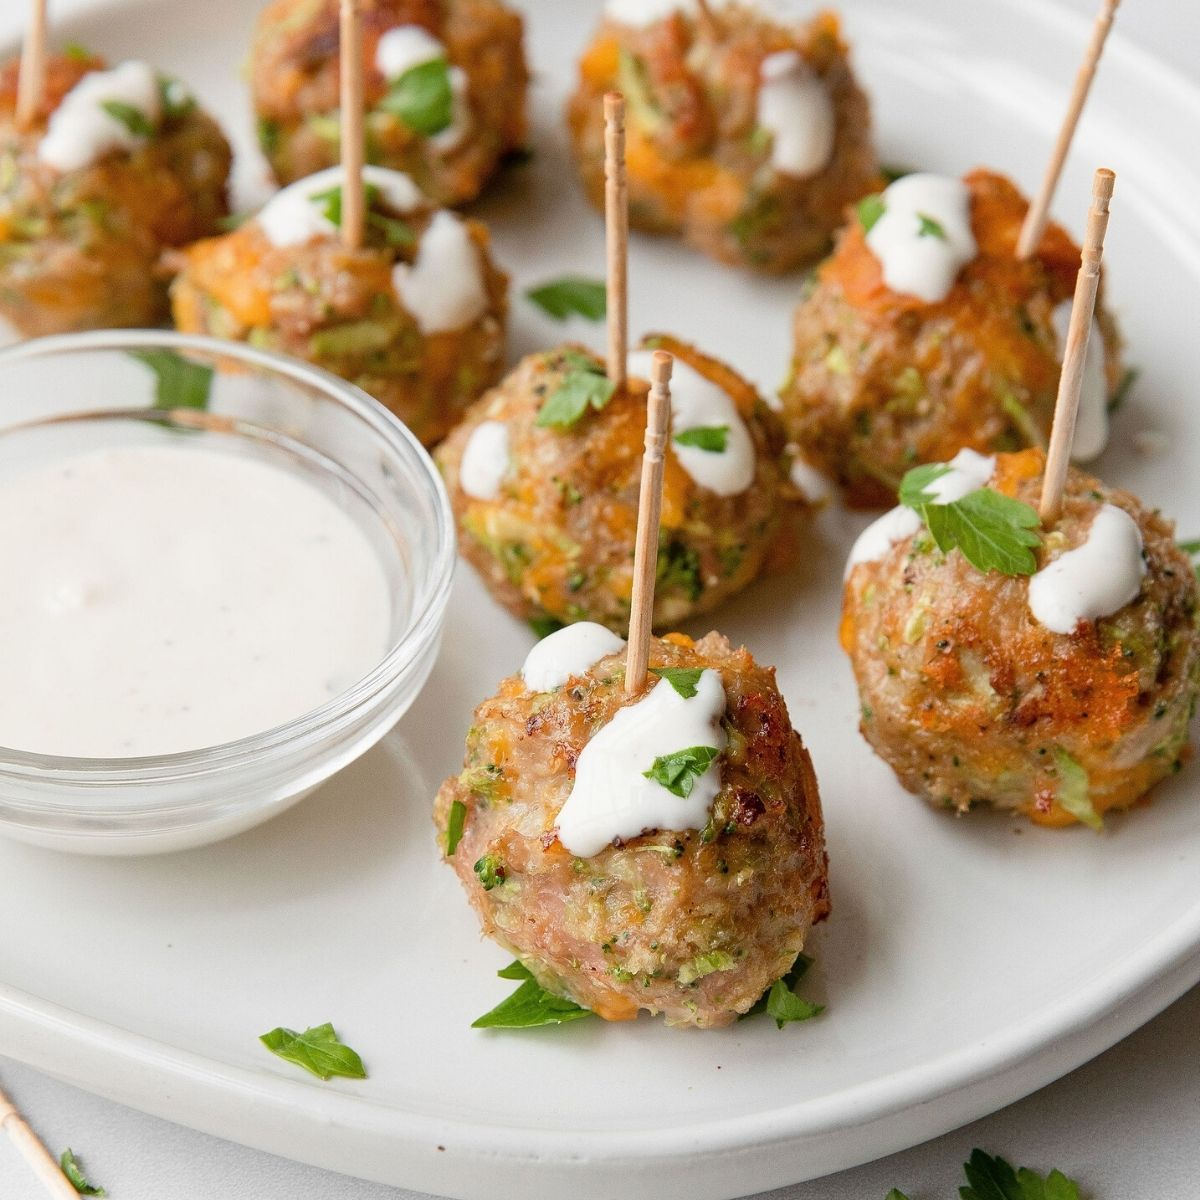 Incredibly easy, juicy, and delicious healthy broccoli cheddar turkey meatball poppers drizzles with caesar dressing or ranch dressing. Simple meatball skewer recipe.